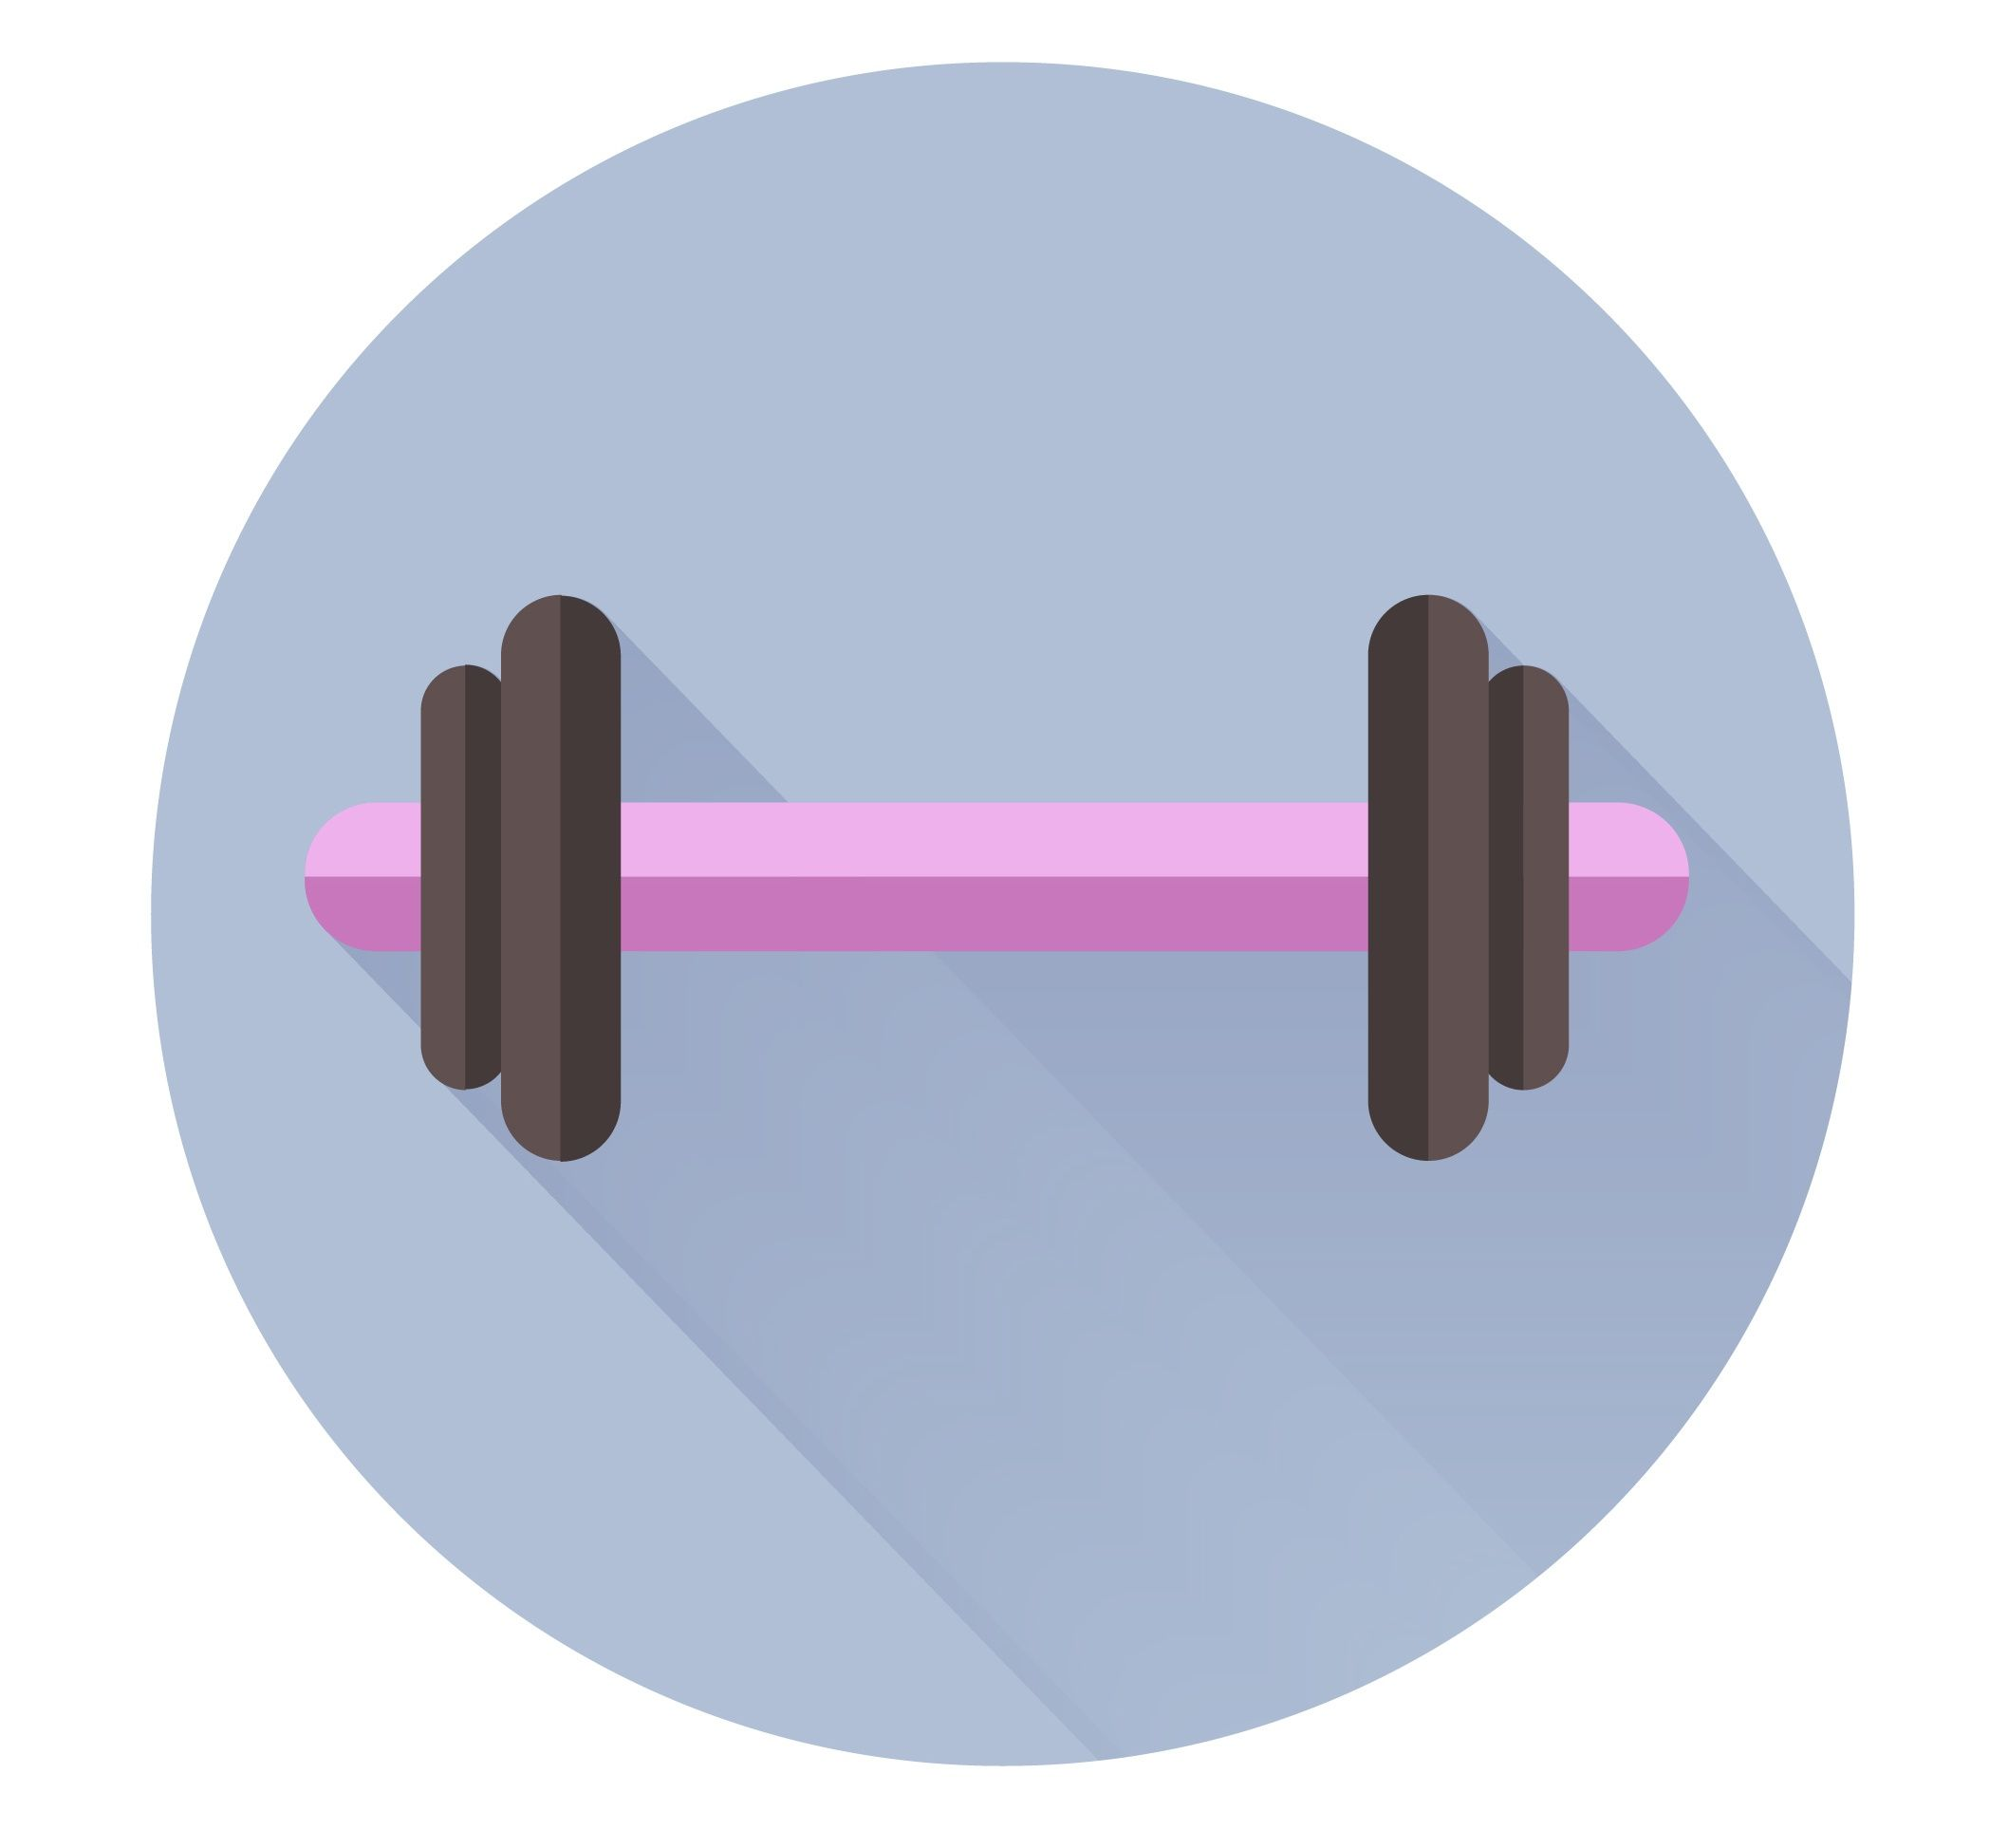 Barbell by Inge L Skillshare projects, Projects, Flat design